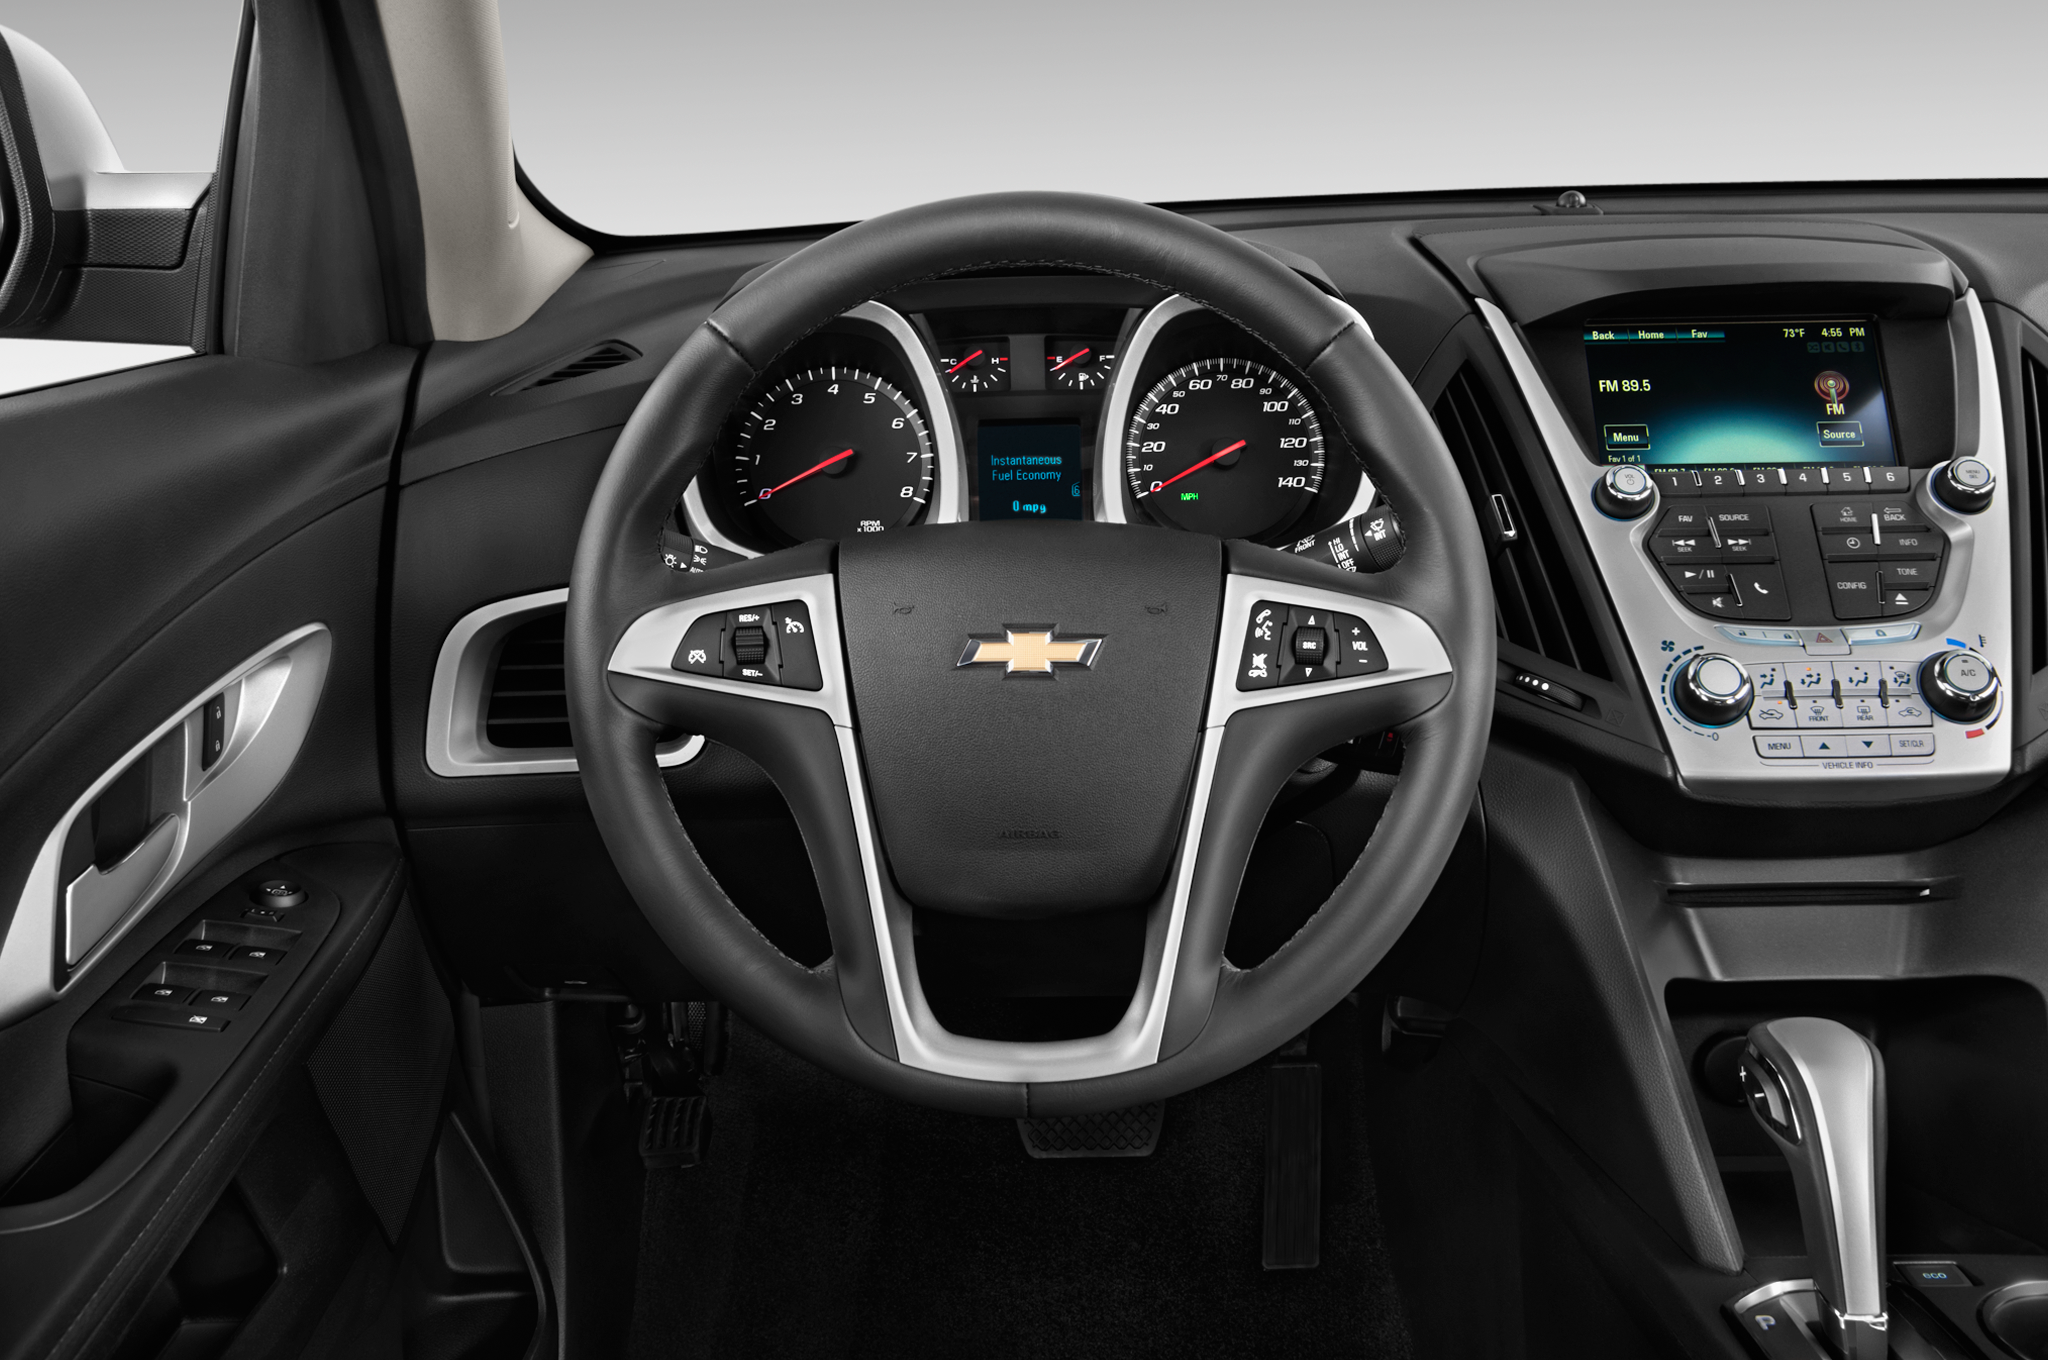 2010 Chevrolet Equinox - Chevy Crossover SUV Review ...